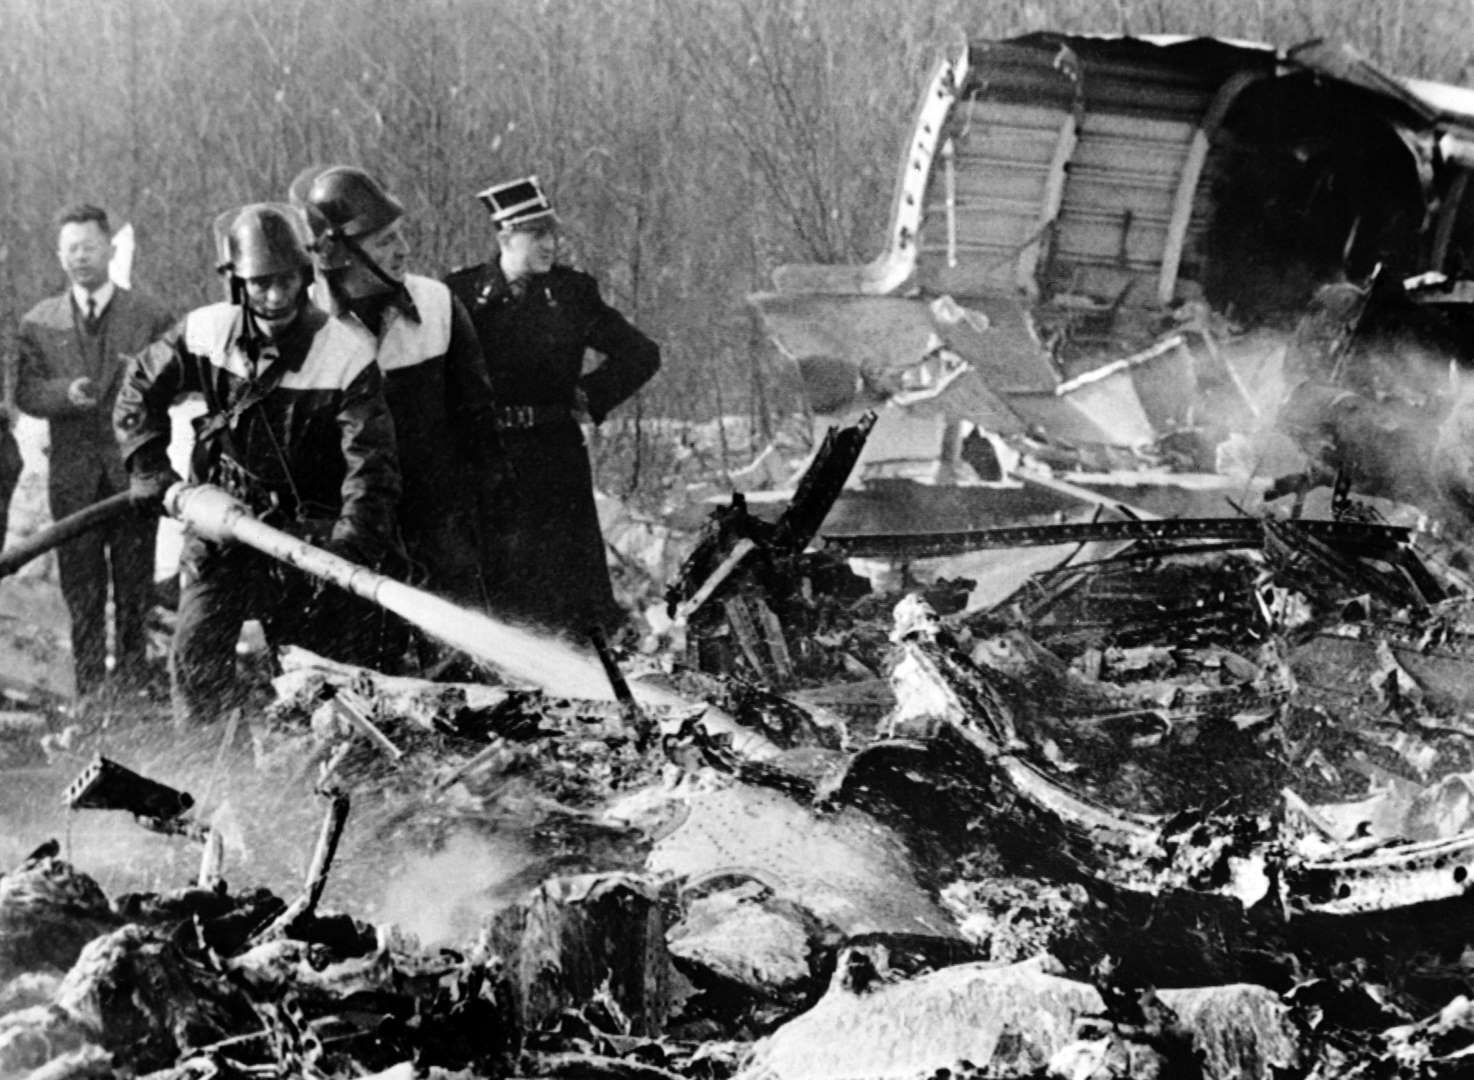 1961 The Entire United States Figure Skating Team Dies In Plane Crash History Figures Today In History History